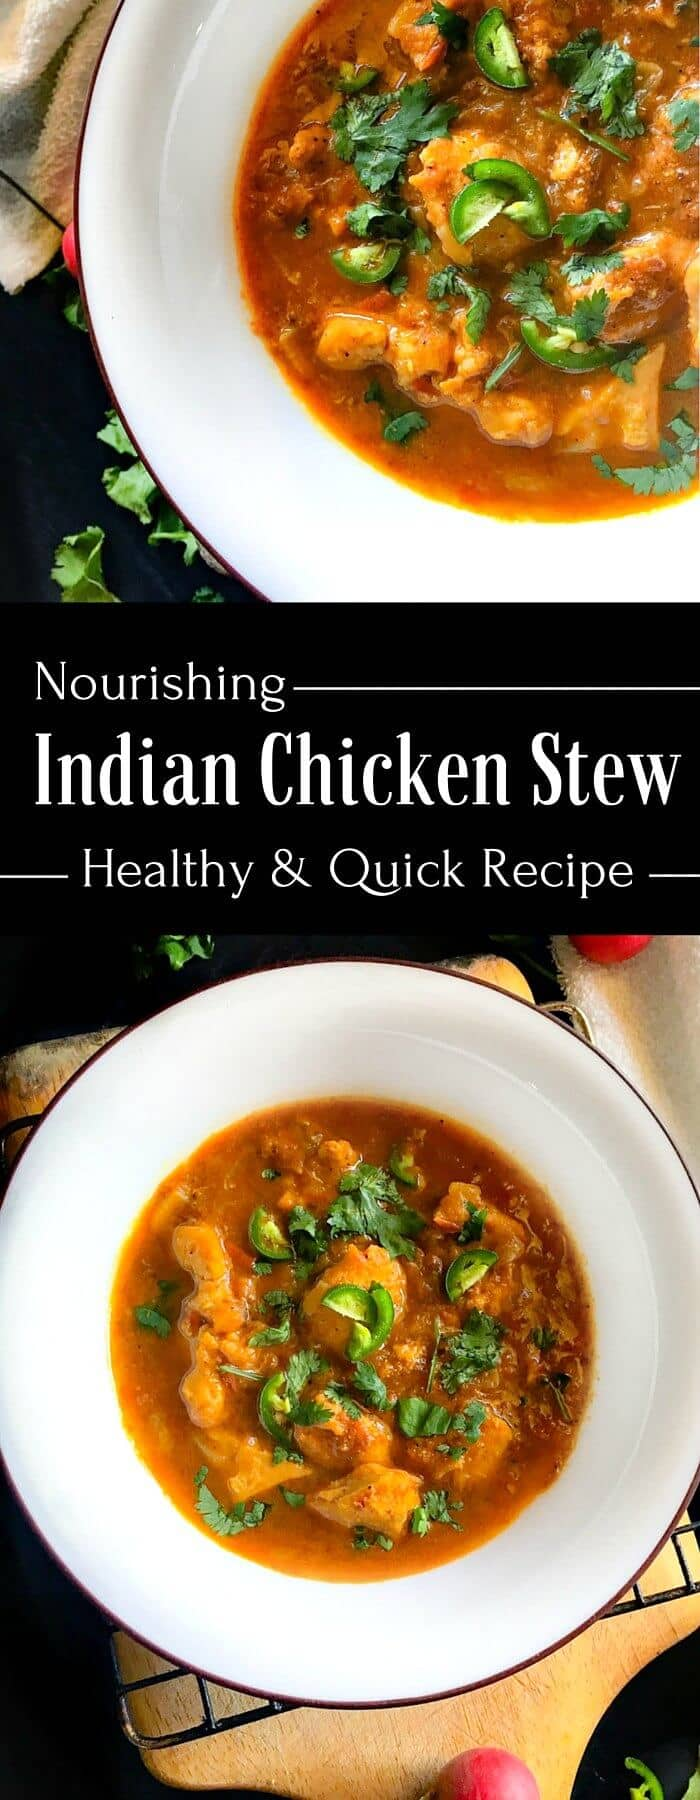 Nourishing Indian Chicken Stew - Healthy and Quick Recipe : #chicken #stew #indian #recipe